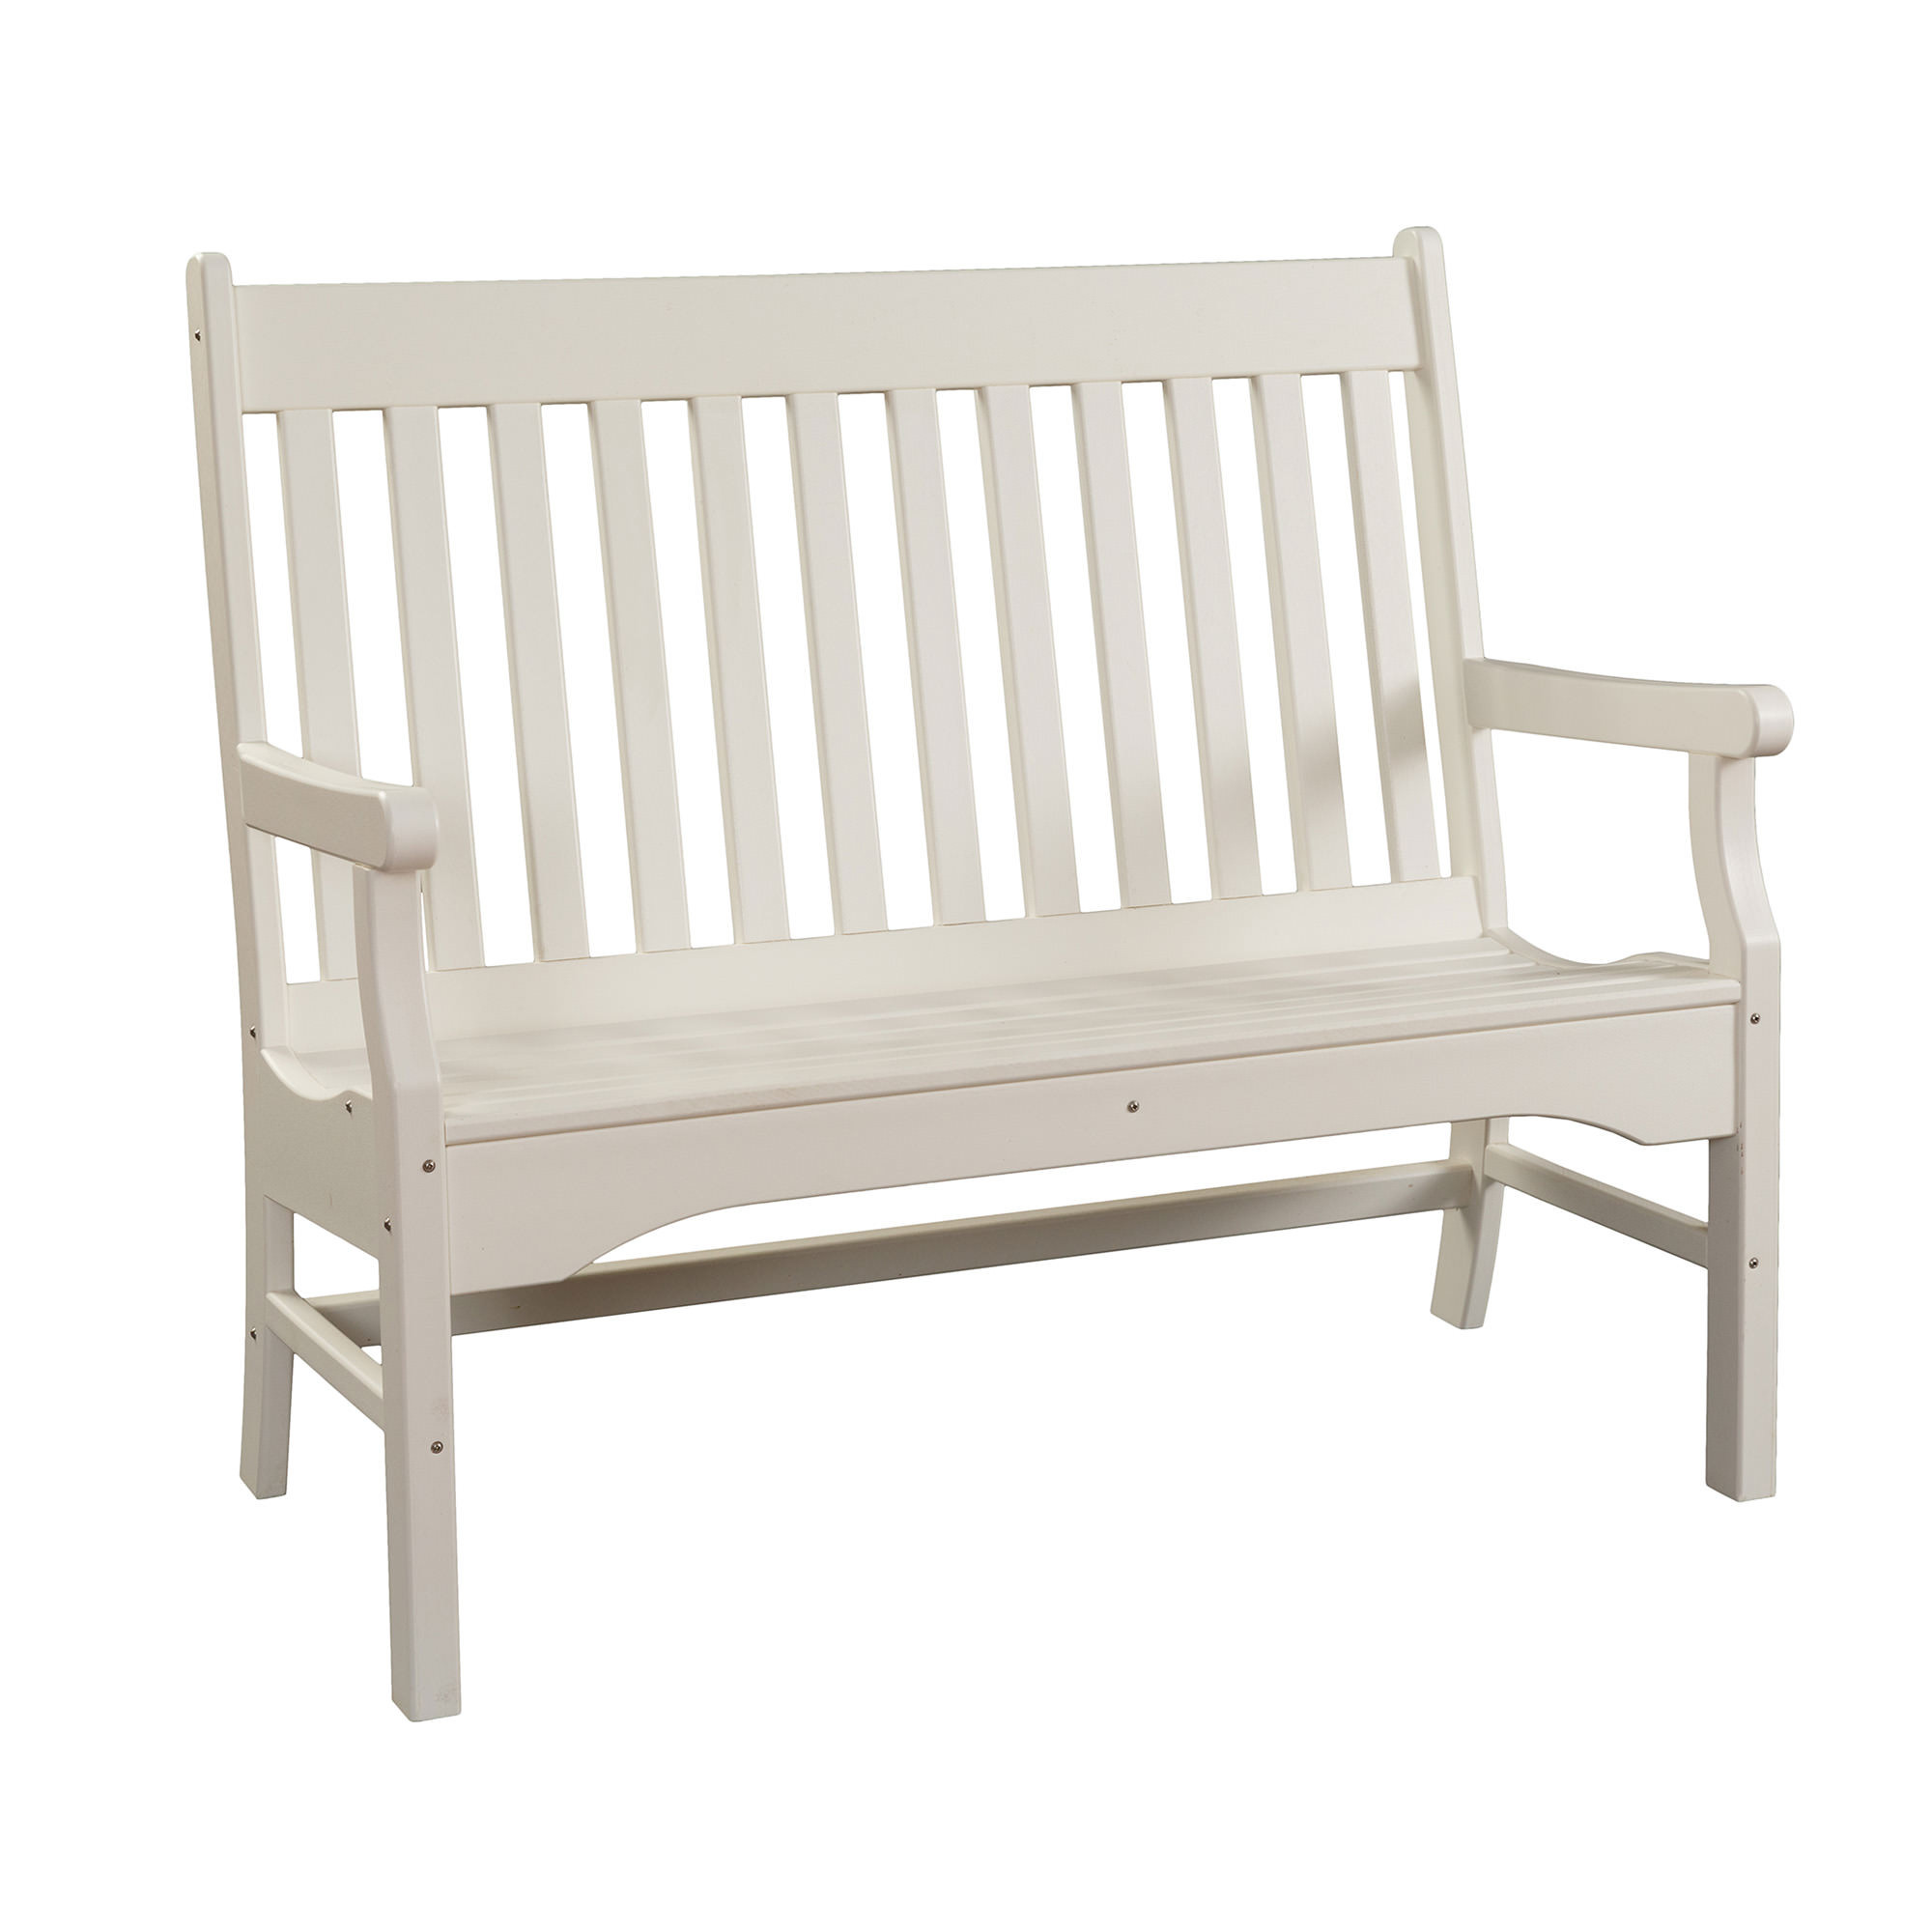 Conestoga Poly 4 ft Garden Bench